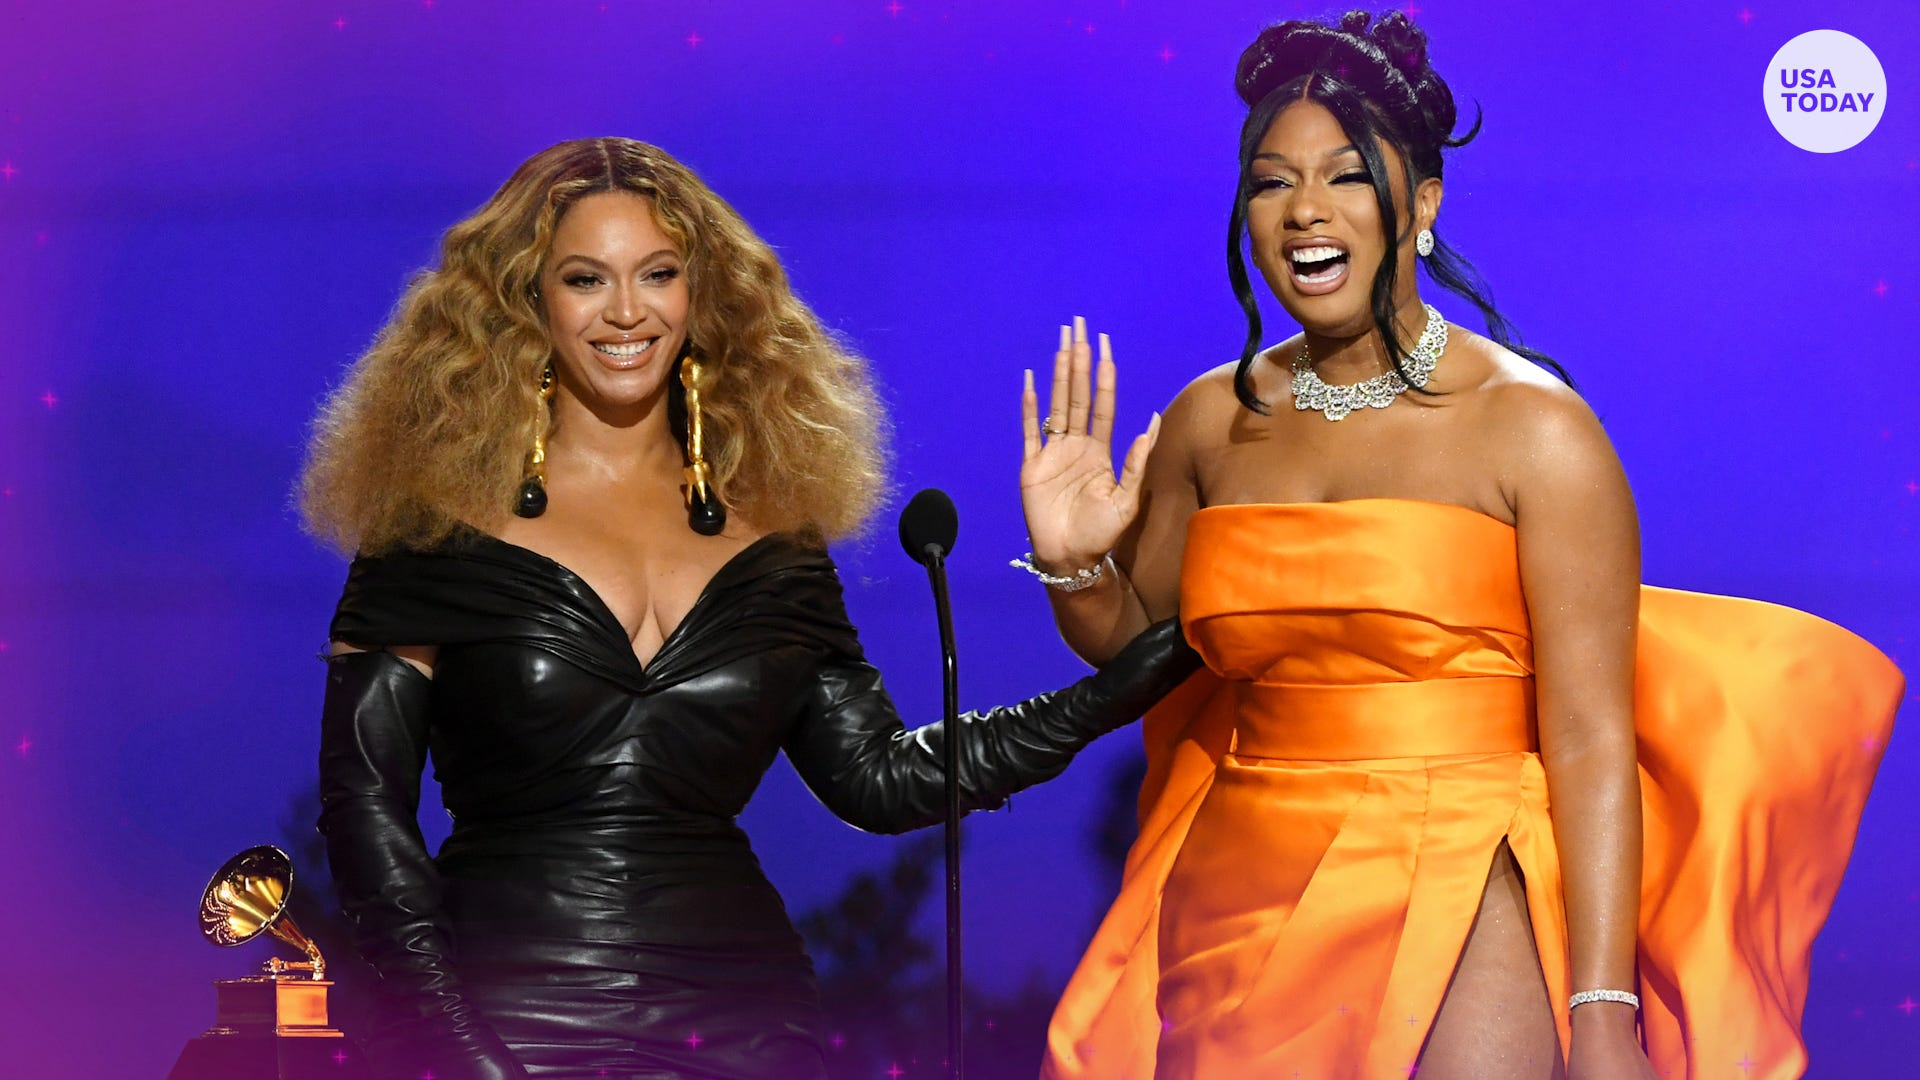 Beyoncé, Taylor Swift and Megan Thee Stallion have a big night at the 2021 Grammy Awards